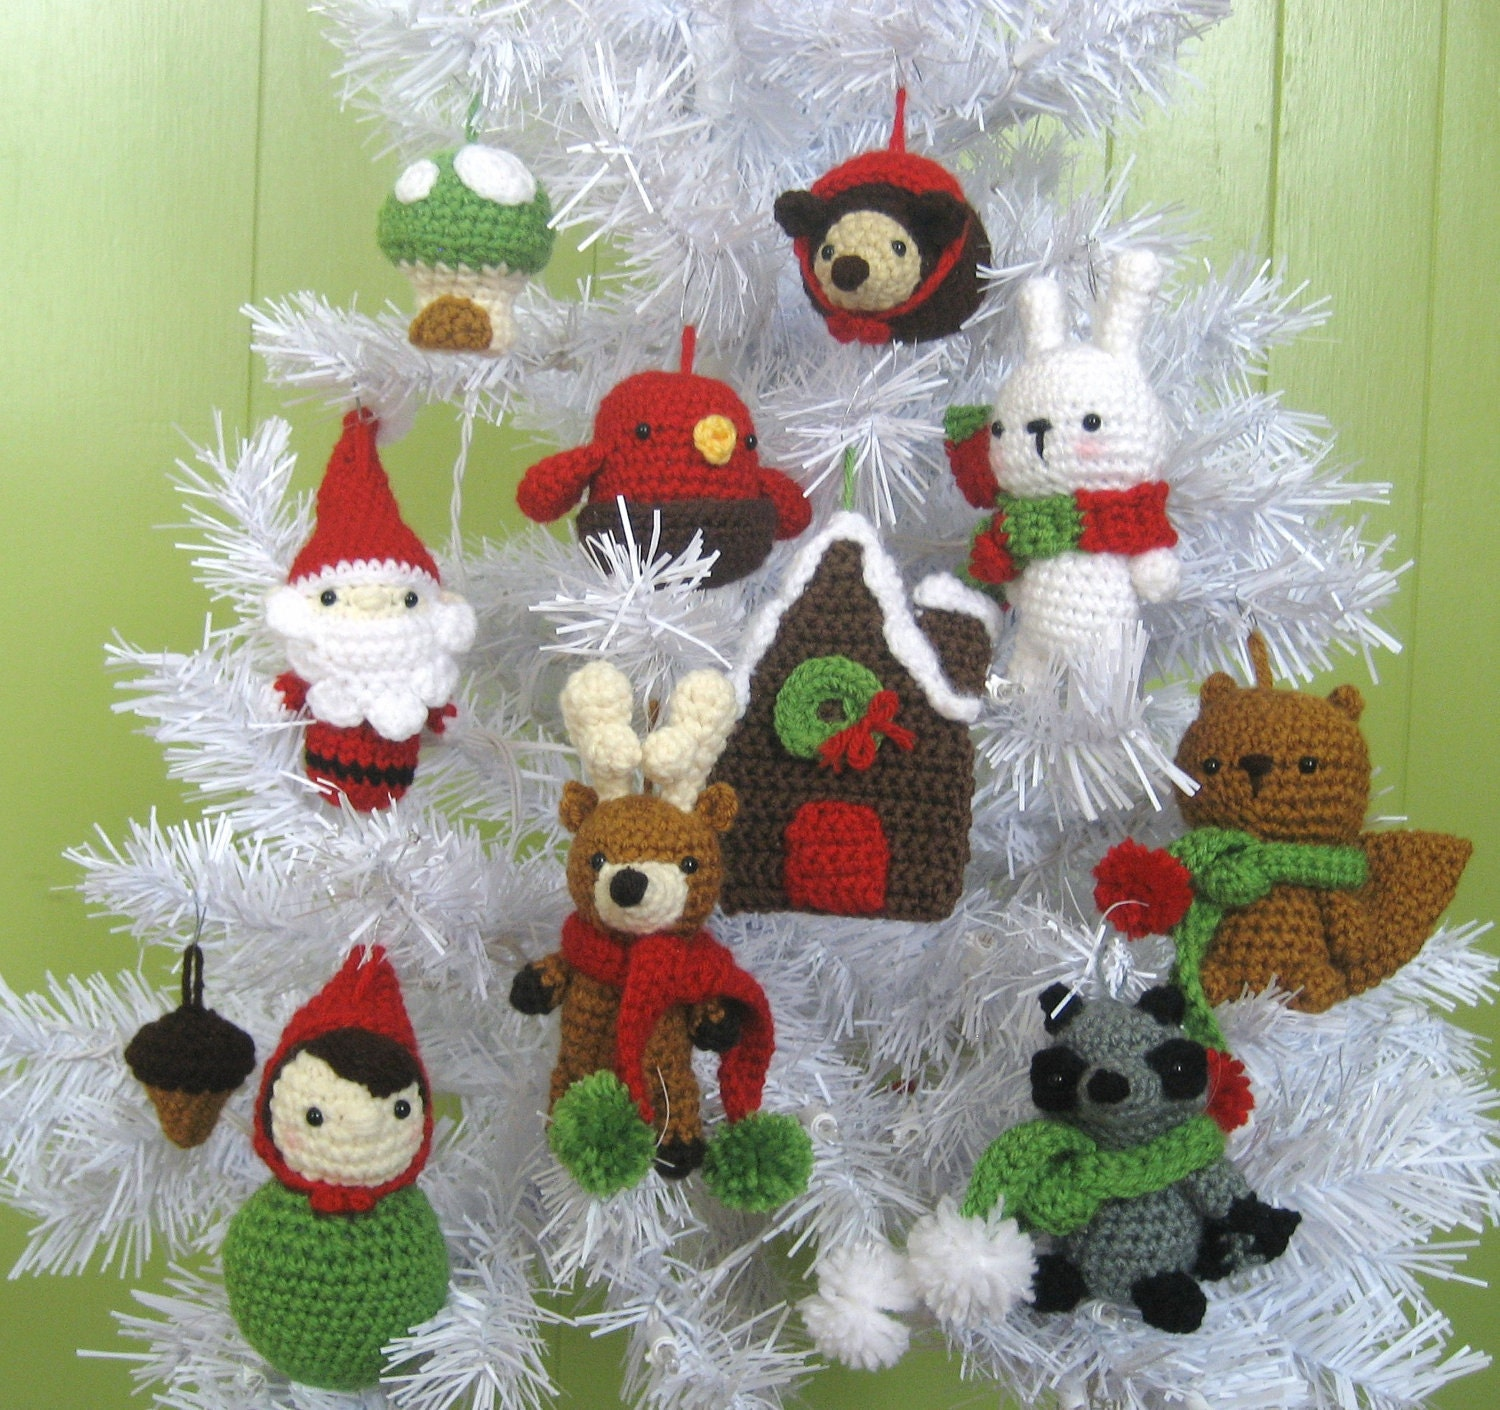 Free Thread Crochet Christmas Ornaments Patterns : Crochet Christmas Ornaments Pattern Free Patterns For ...